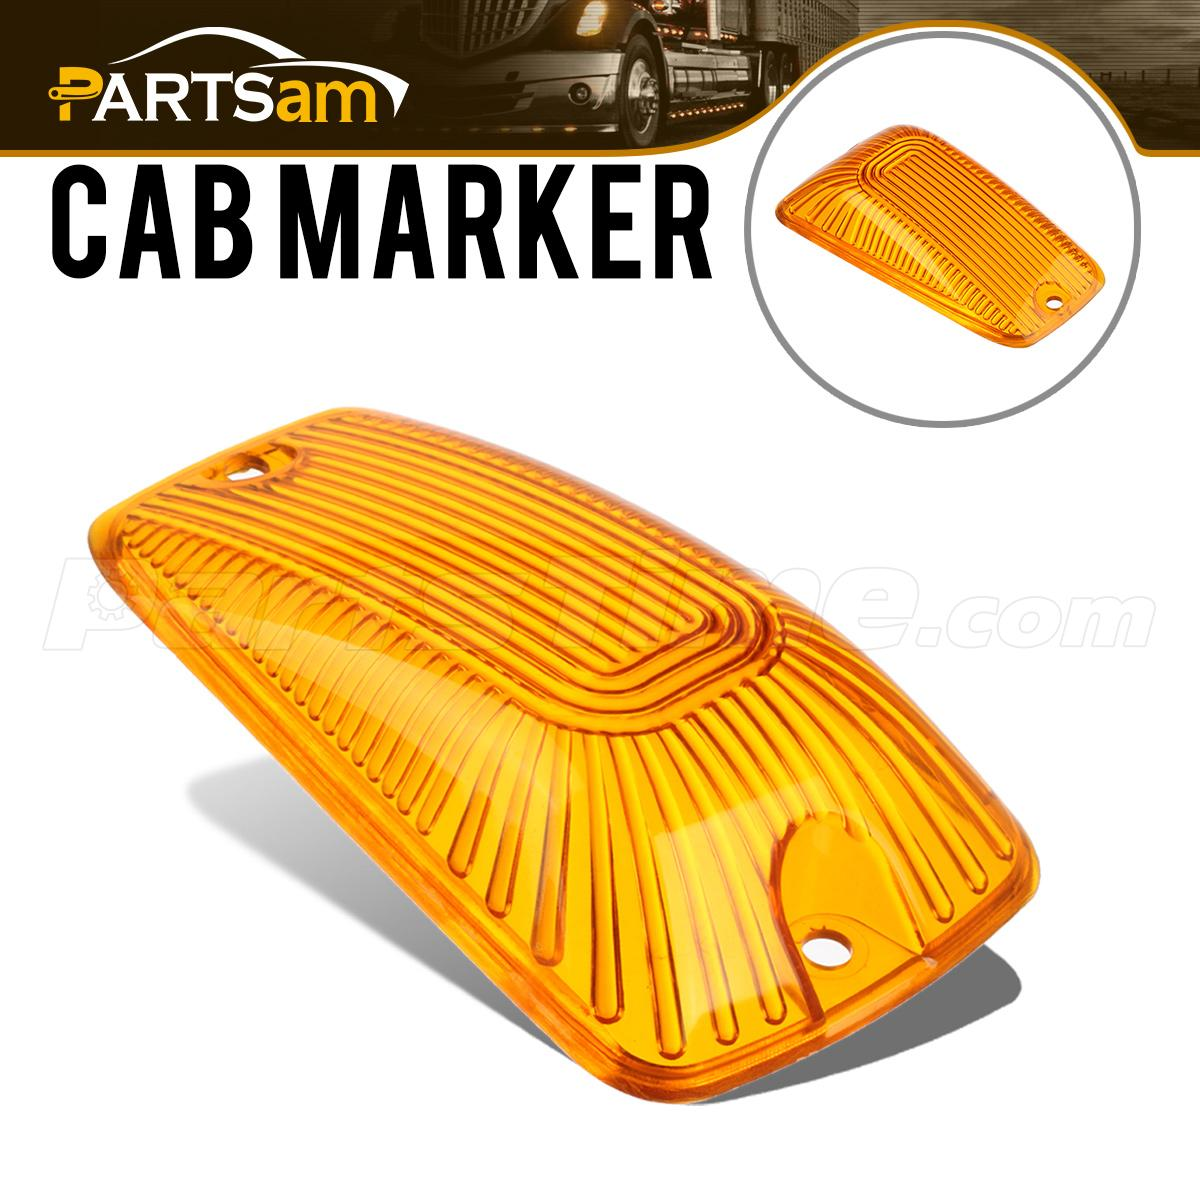 1997 c3500 rear side marker lights diagram cab roof clearance light lamp amber cover lens for chevy c ...